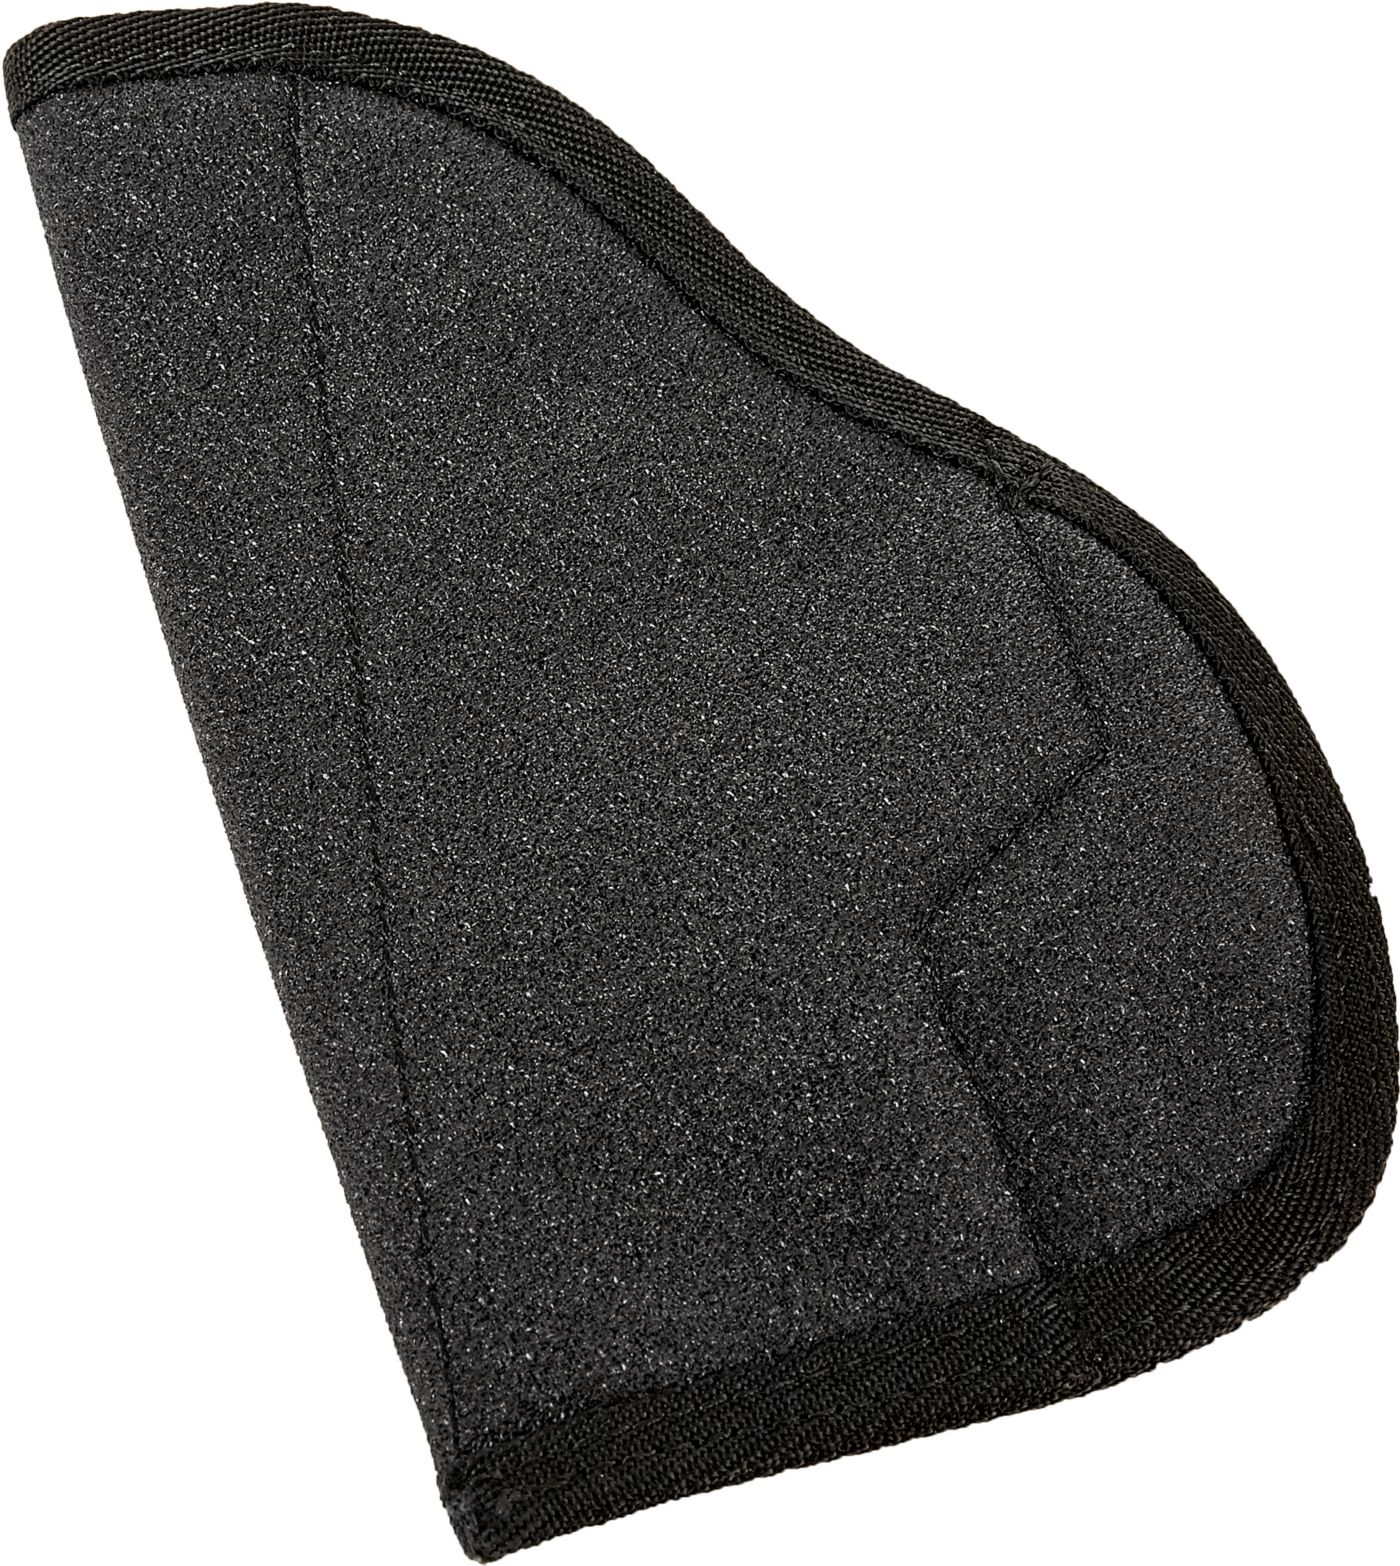 Field & Stream Black Shield Dura-Grip Concealed Carry Holster